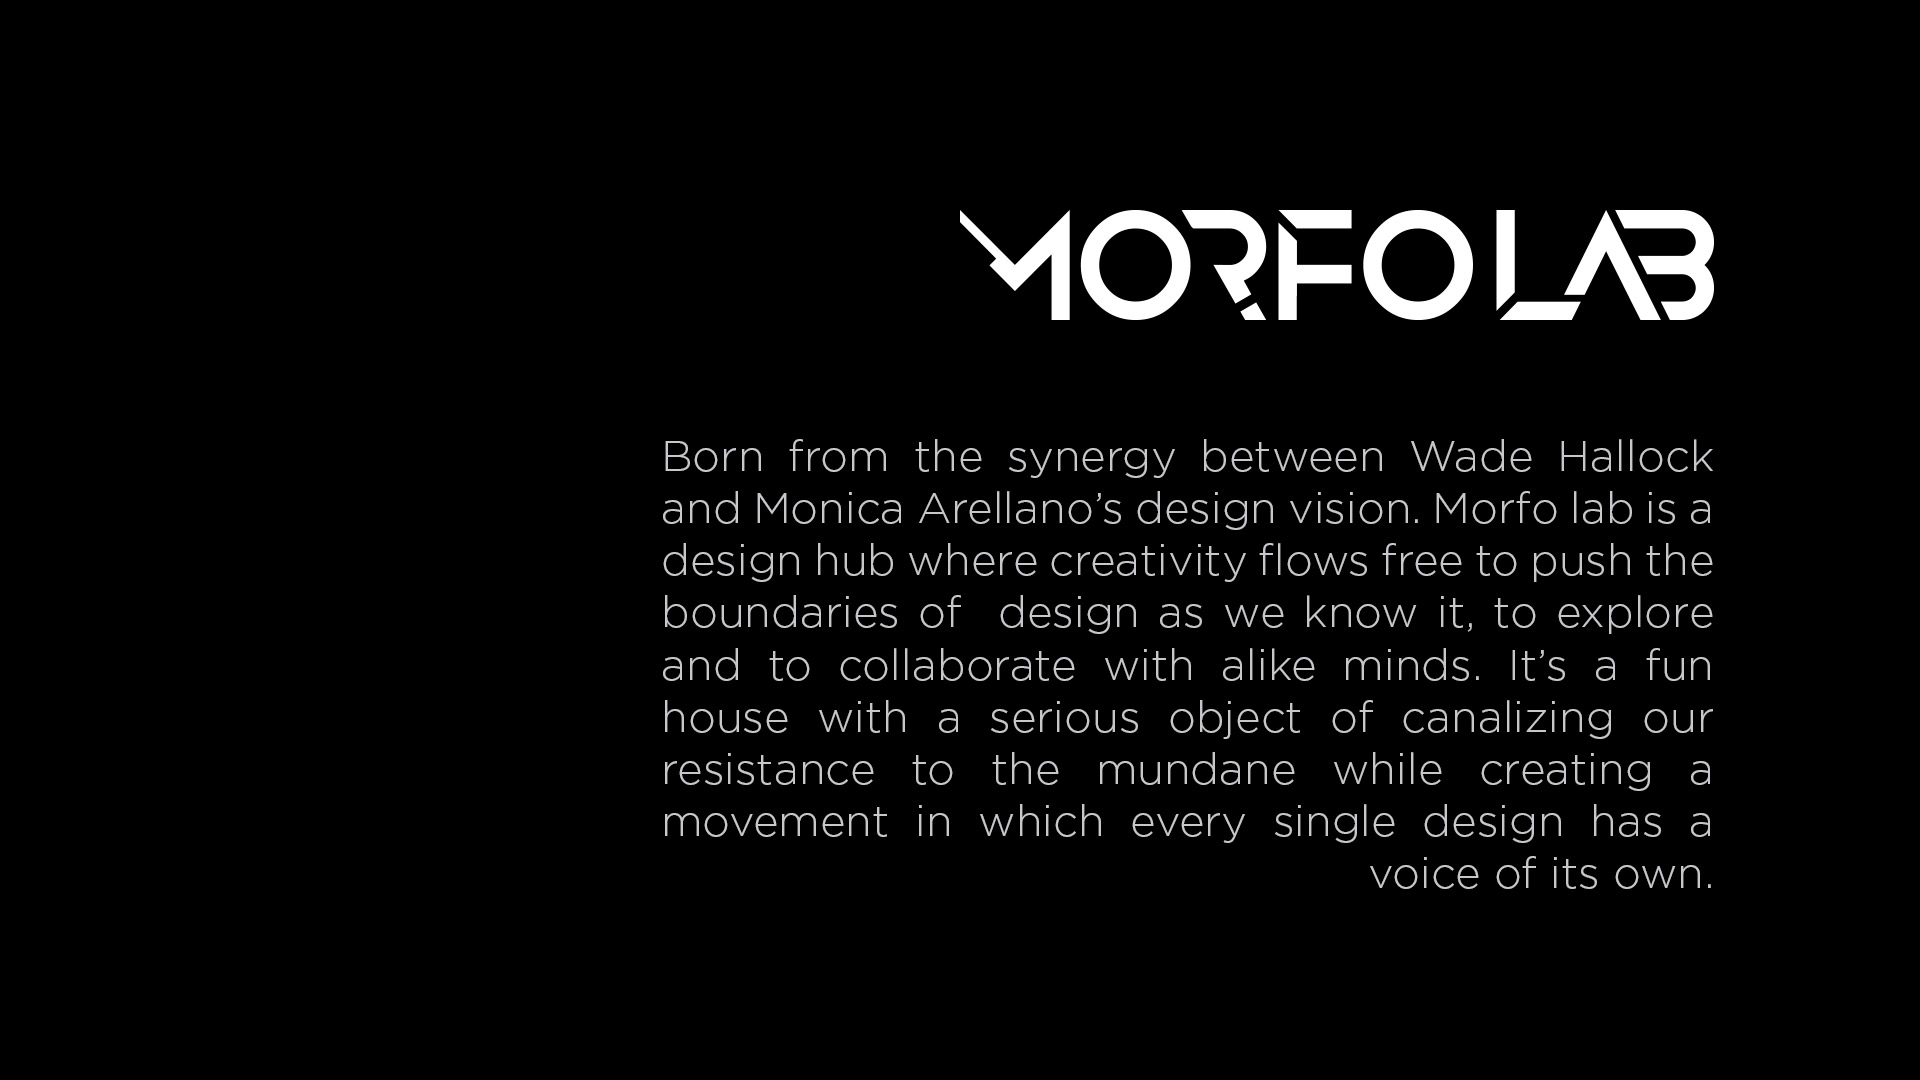 Morfo-lab-about-us.jpg